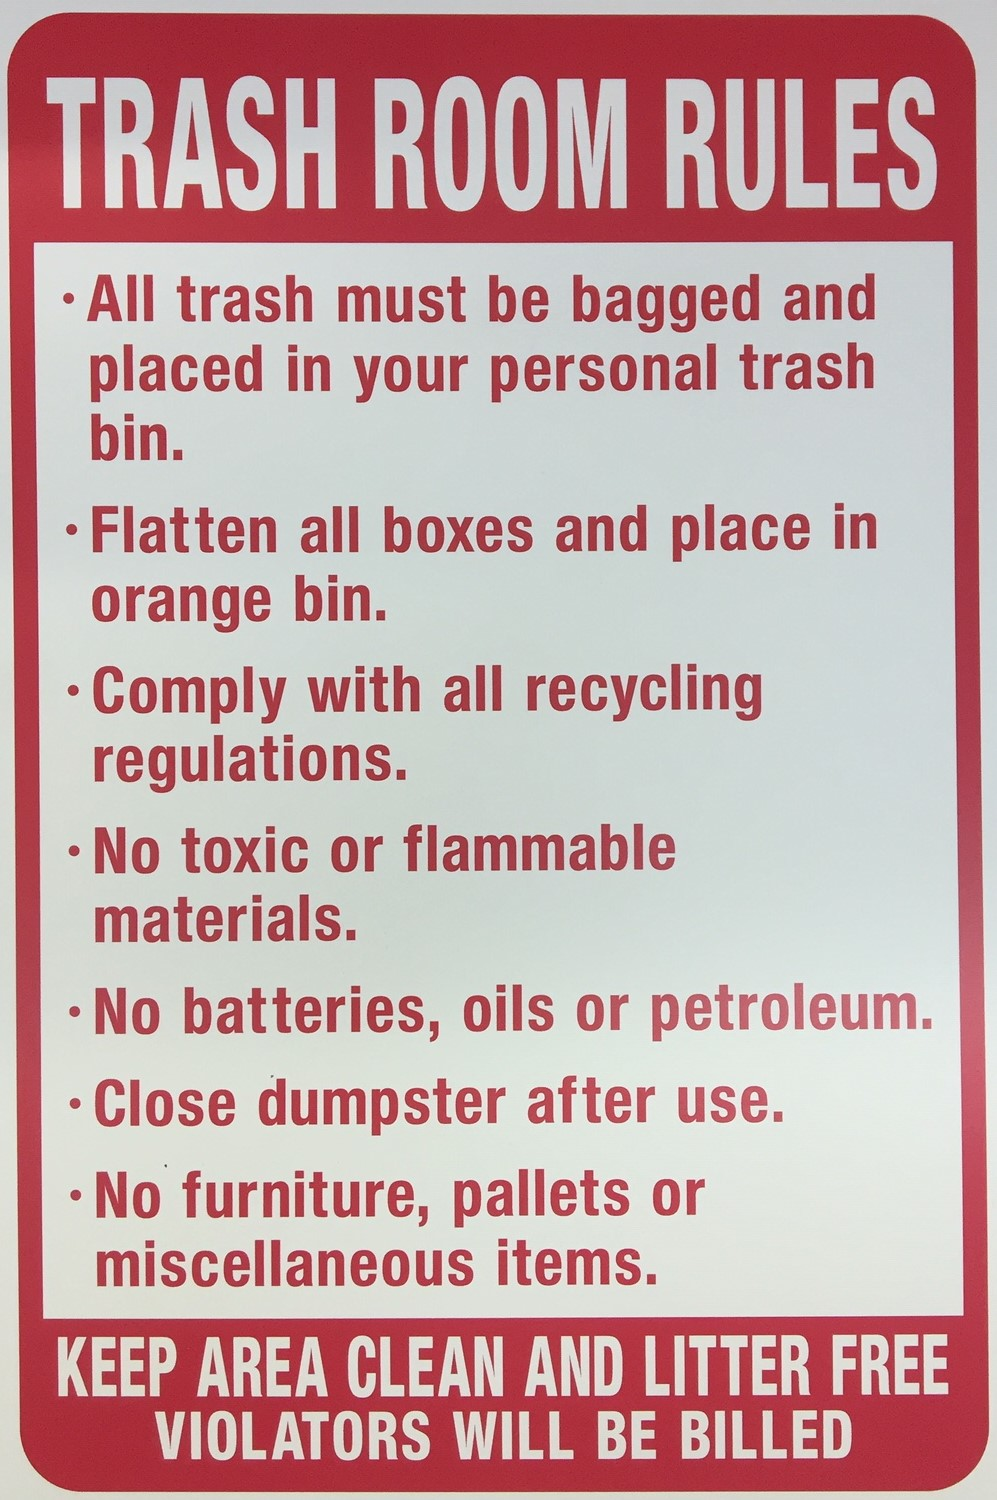 TRASH ROOM RULES